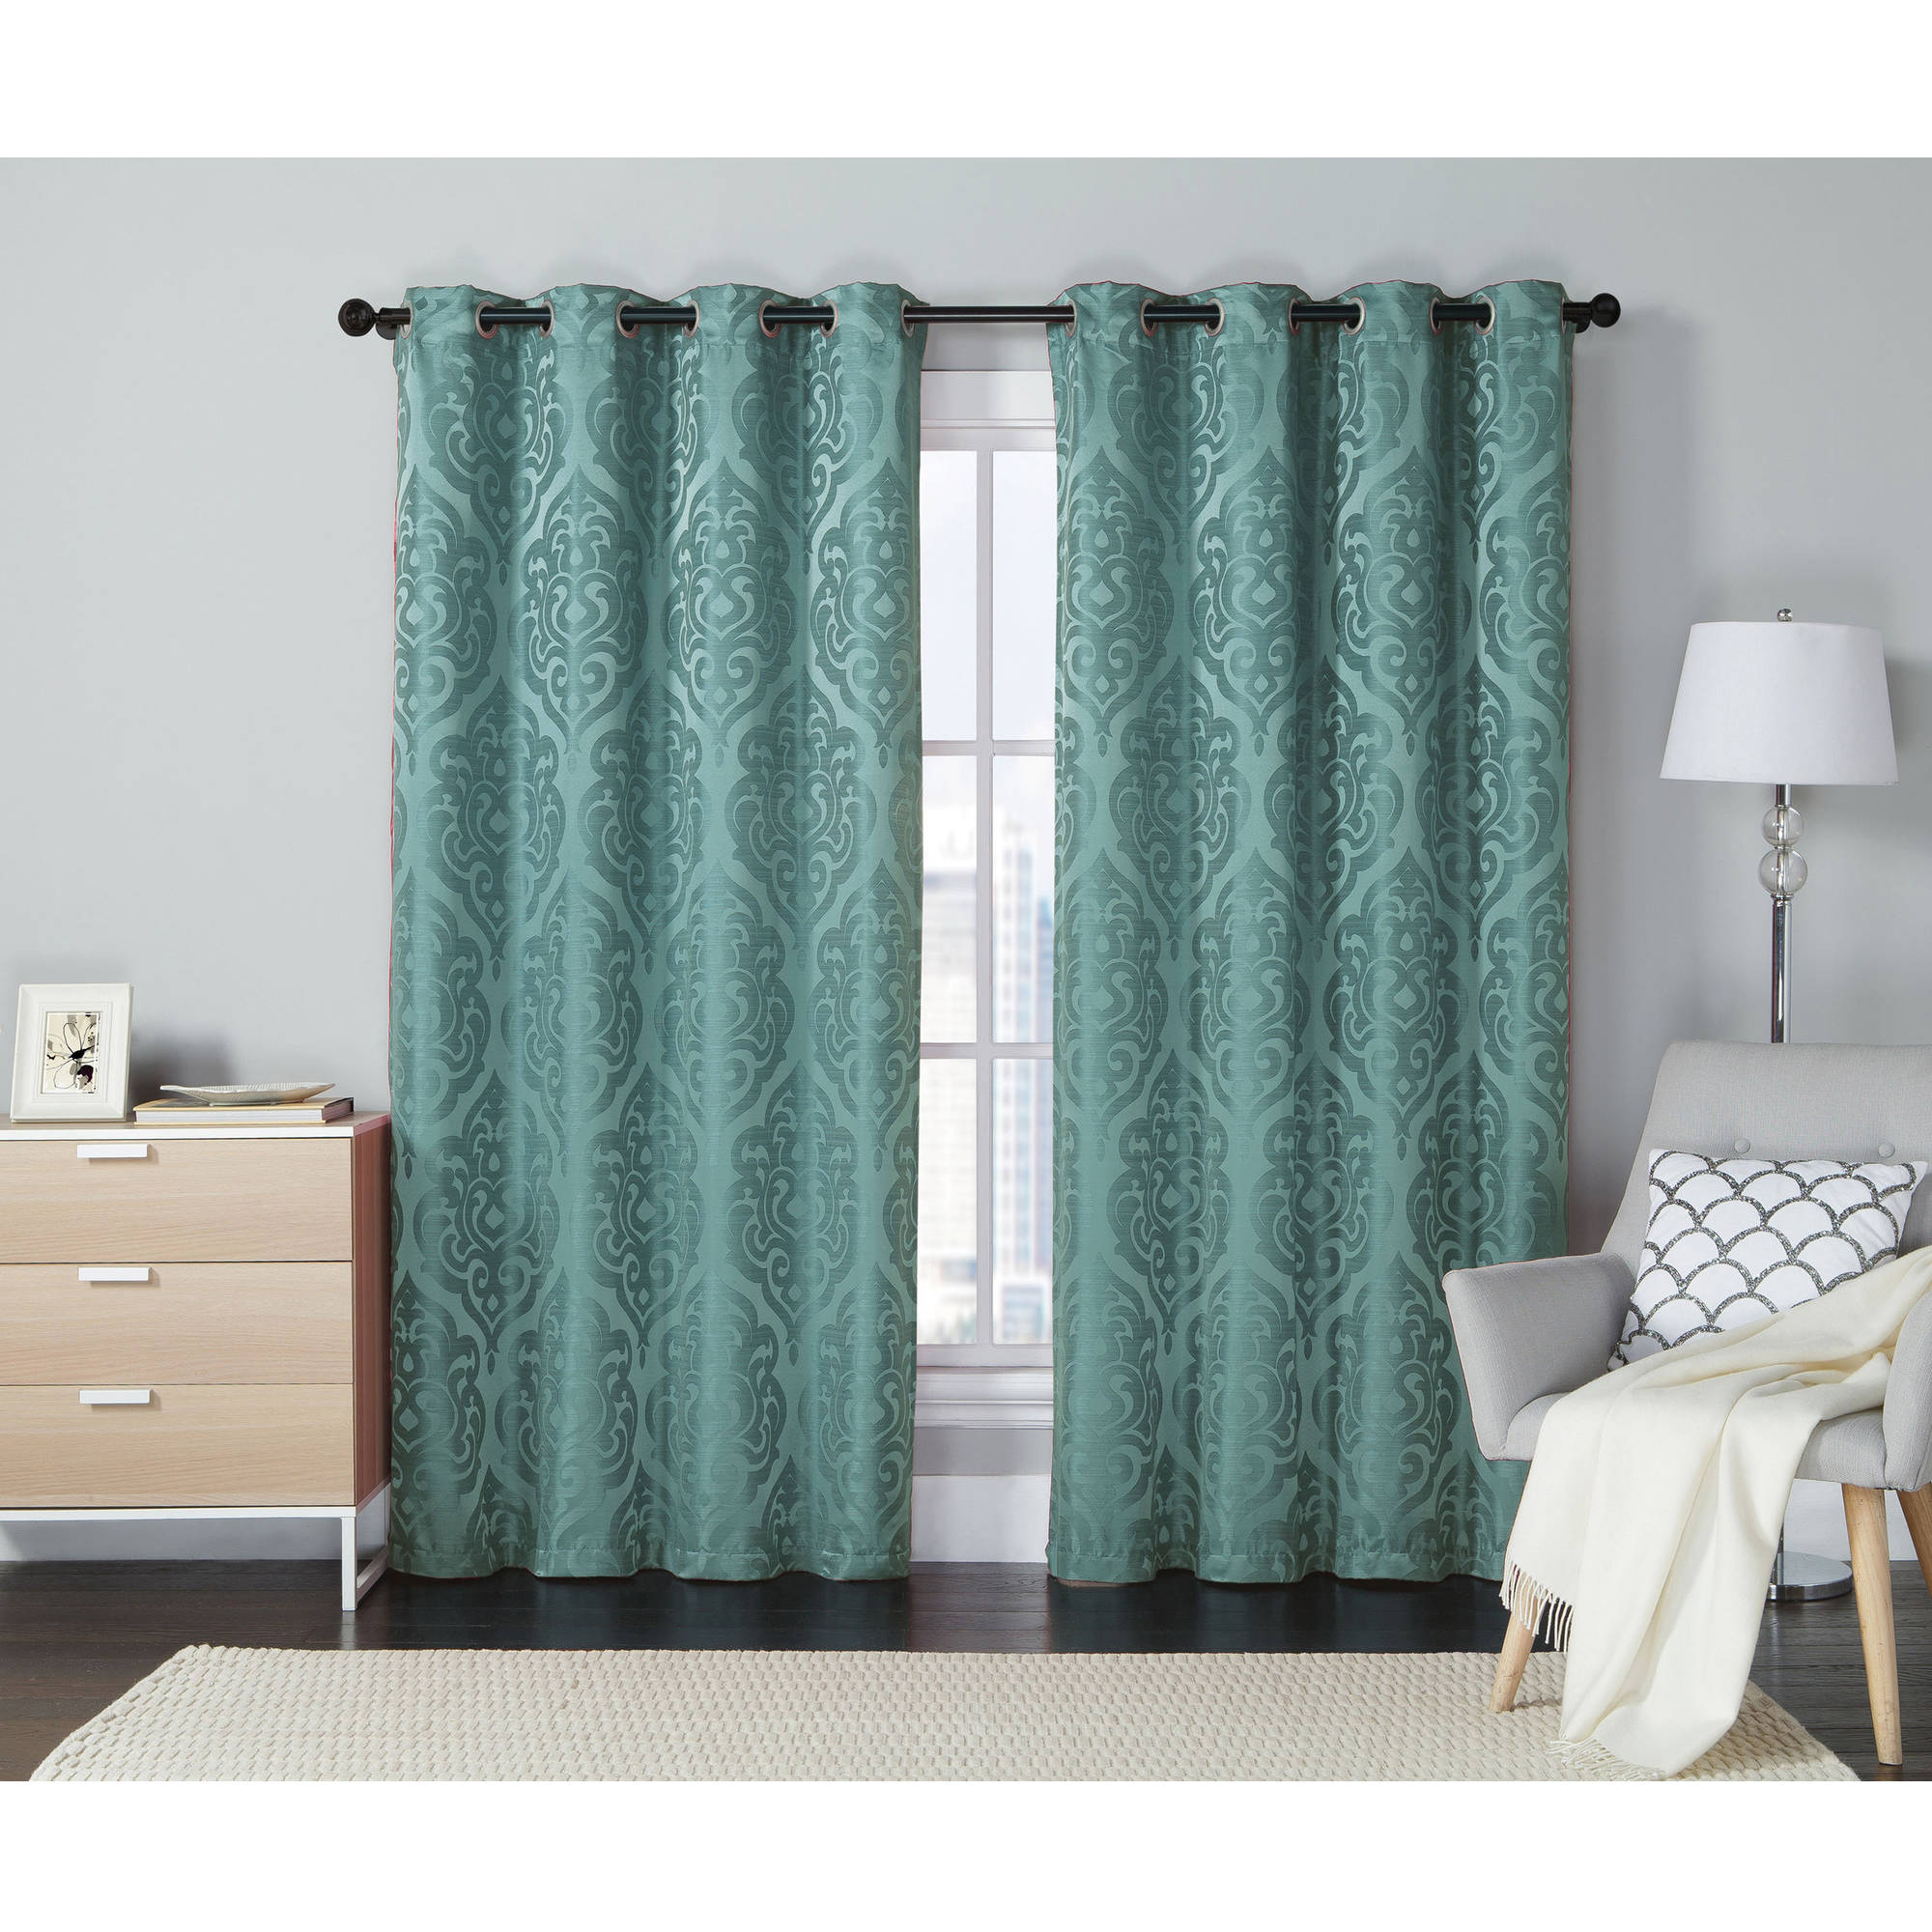 "***DISCONTINUED*** VCNY Home Westmount Damask Jacquard 84"" Length Grommet Top Window Curtains"